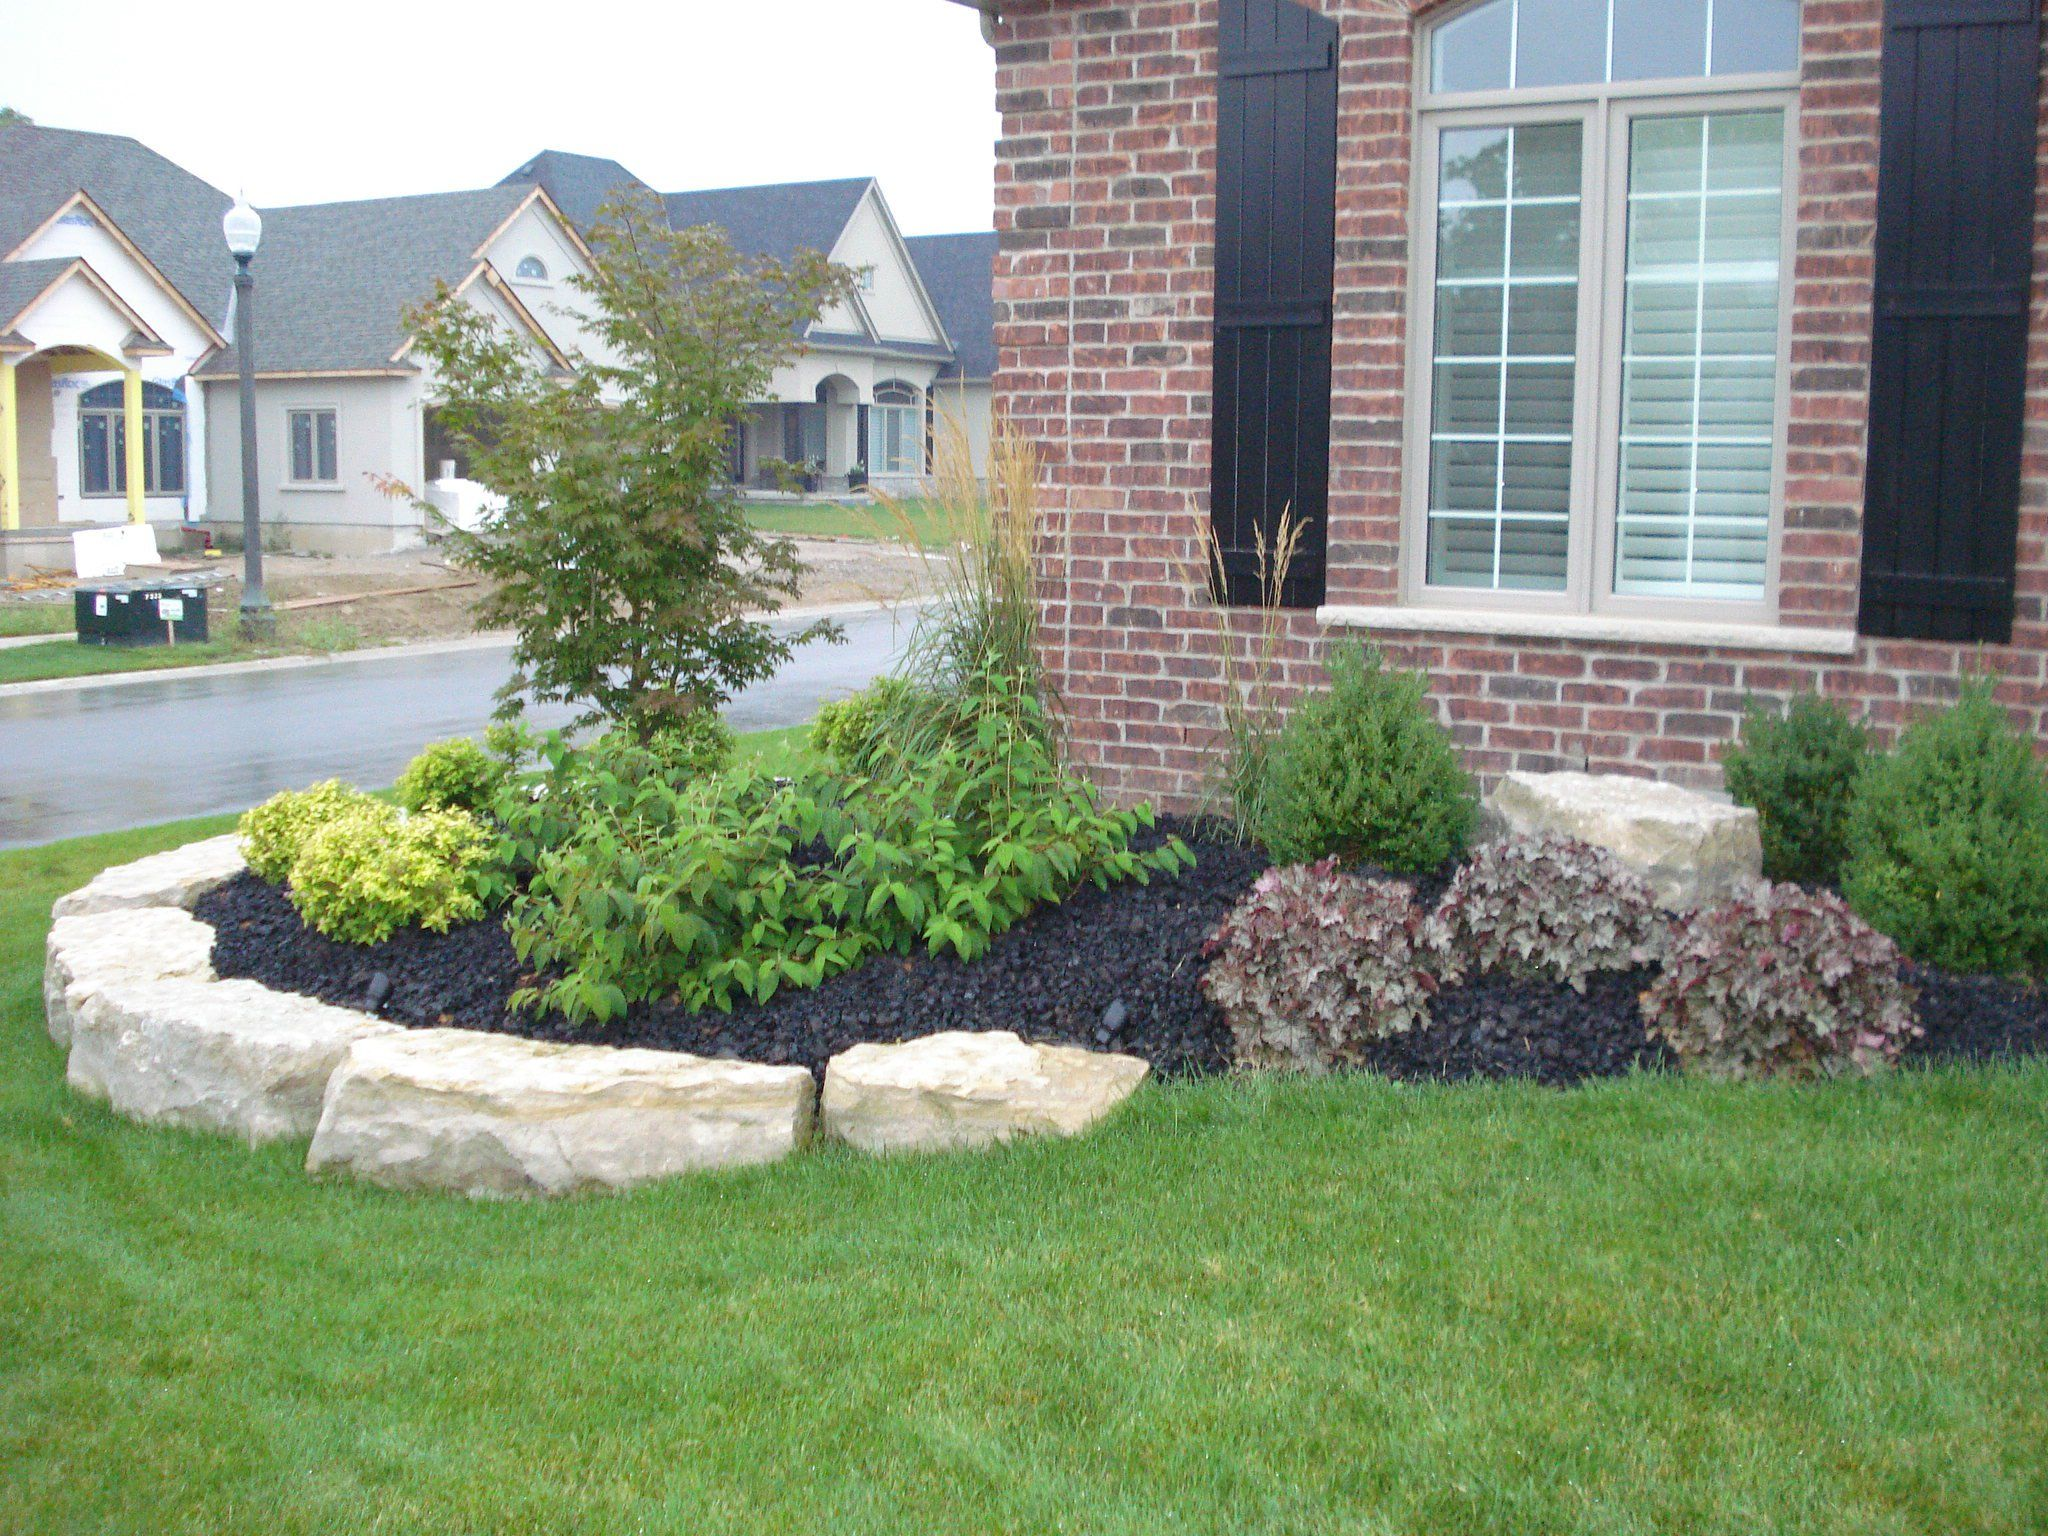 amazing how much for landscaping 1 front yard flower bed